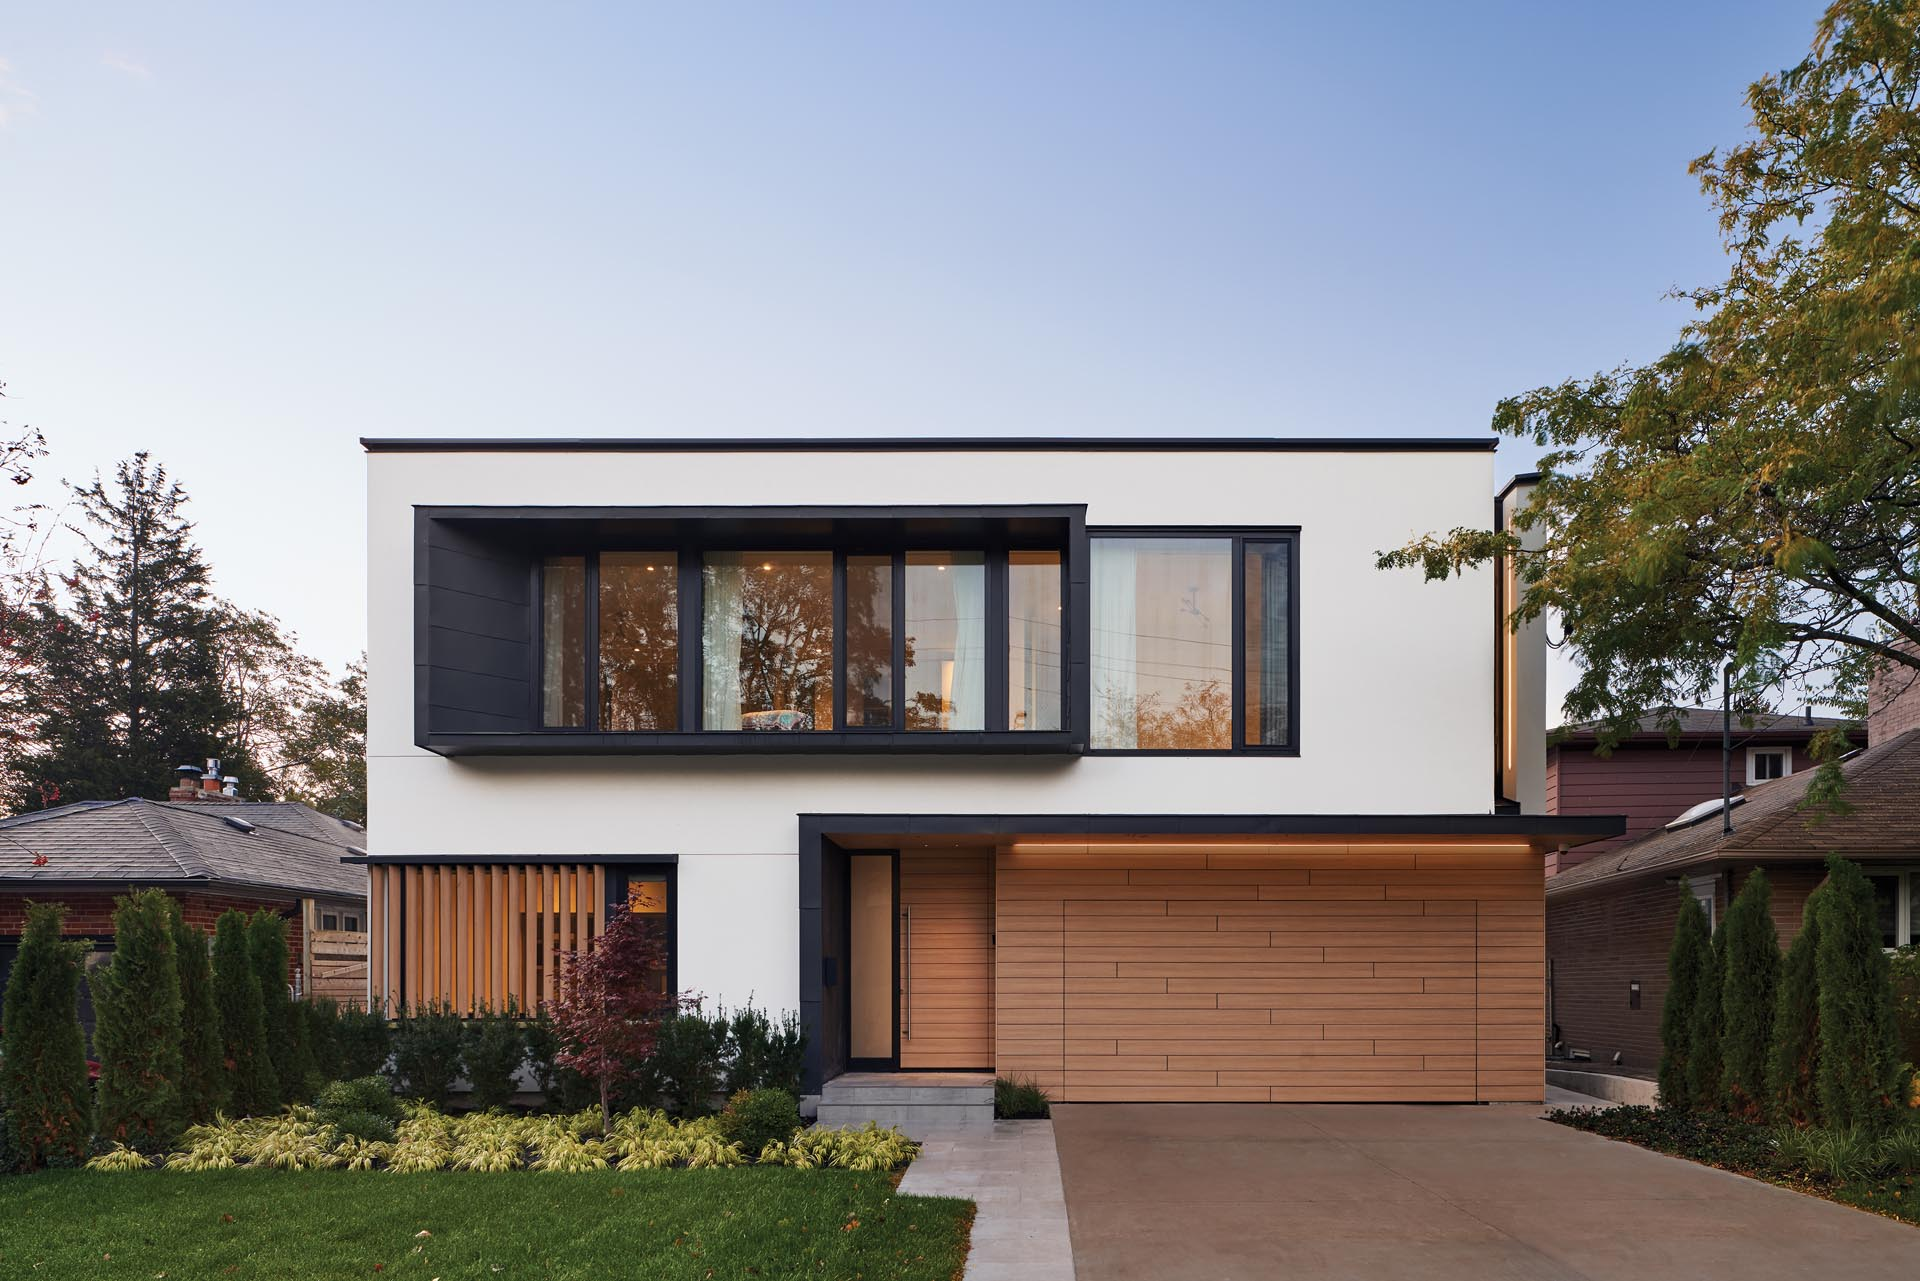 The exterior of this modern house features a facade of white stucco walls and black metal accent panels, which were paired with warm oak-look phenolic panels.